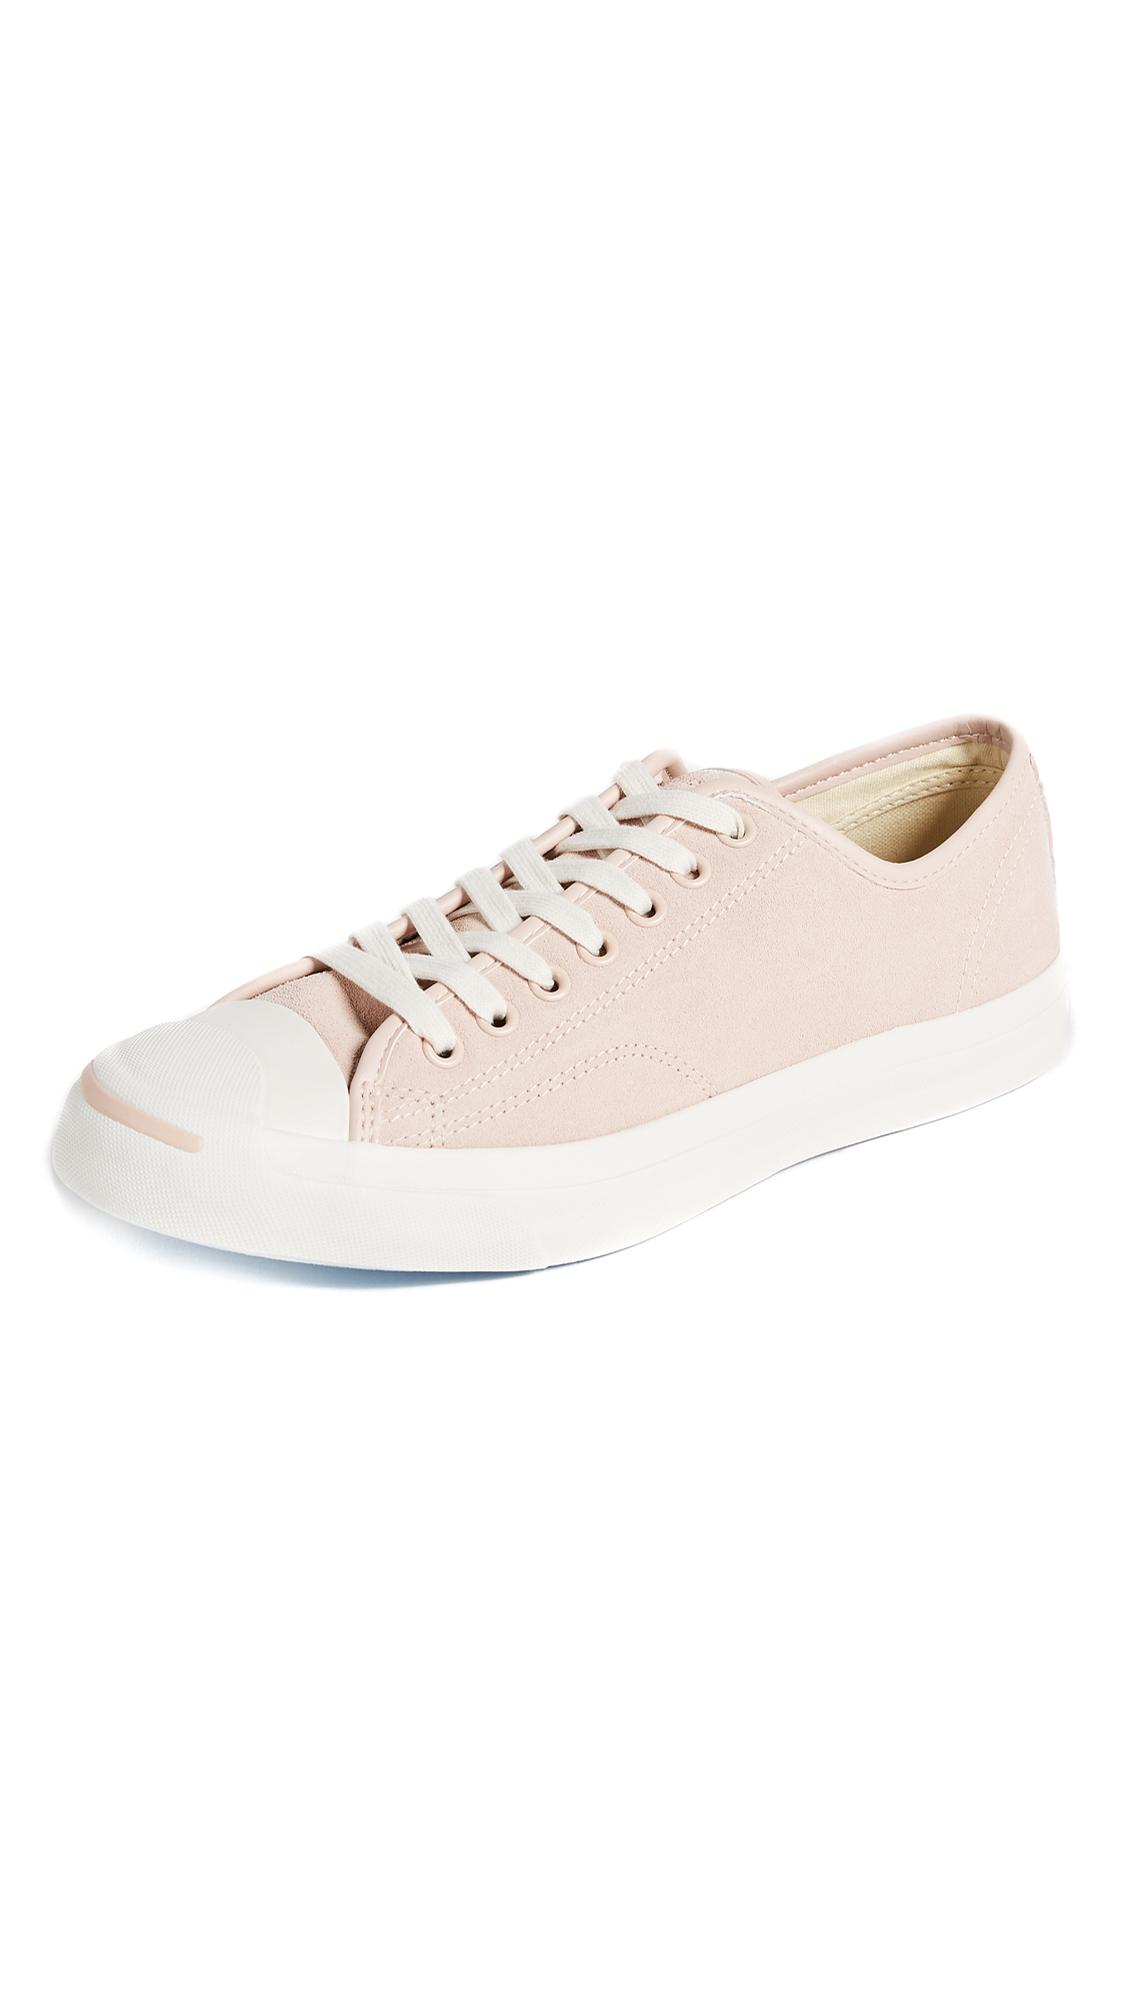 2d4ec06b38ed Converse Men s Jack Purcell Jack Ox Casual Sneakers From Finish Line In  Dusk Pink Natural